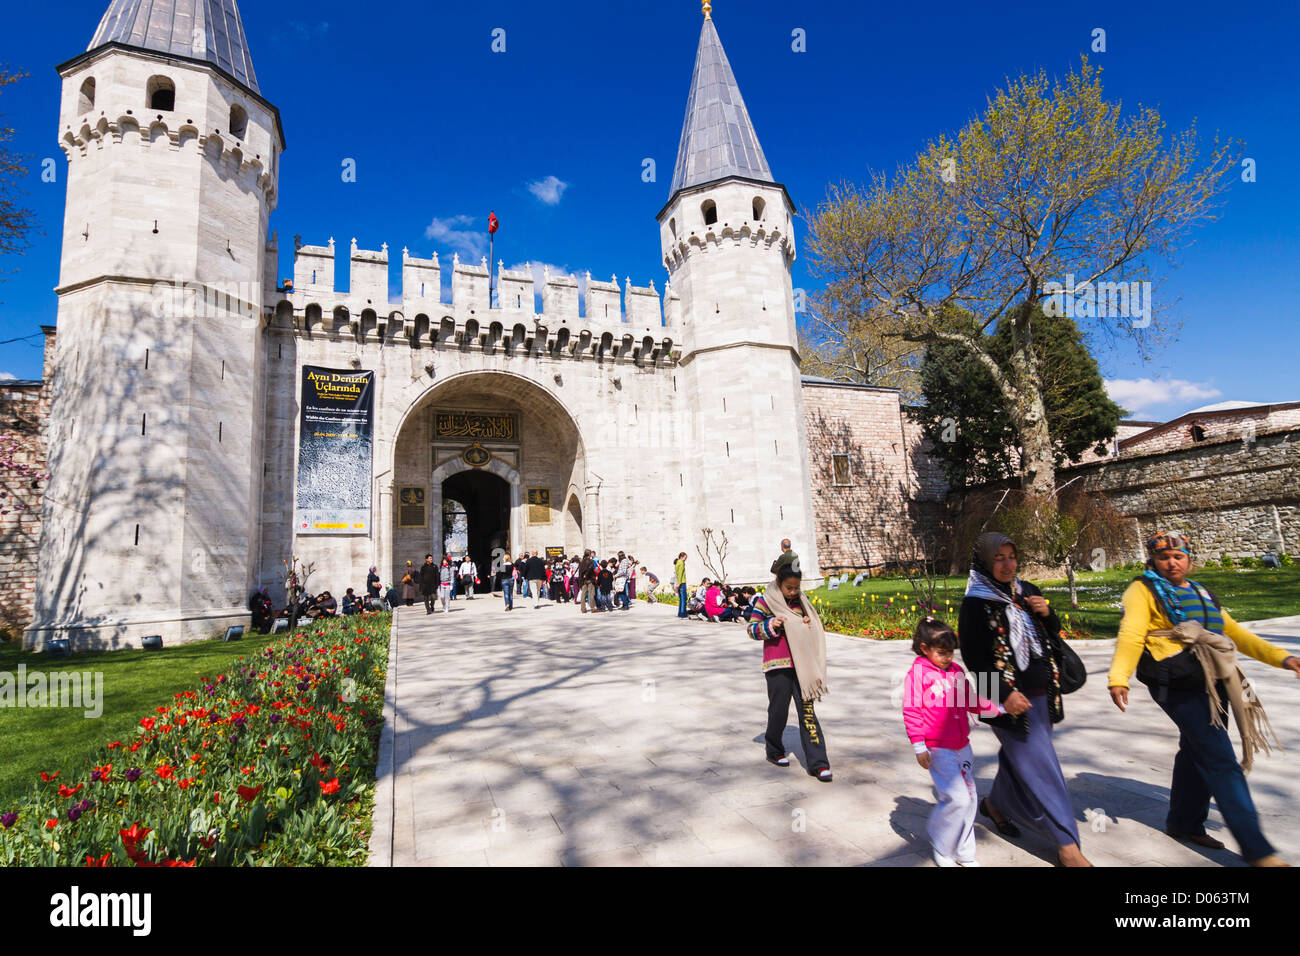 People at the entrance of Topkapi Palace. Istanbul, Turkey - Stock Image